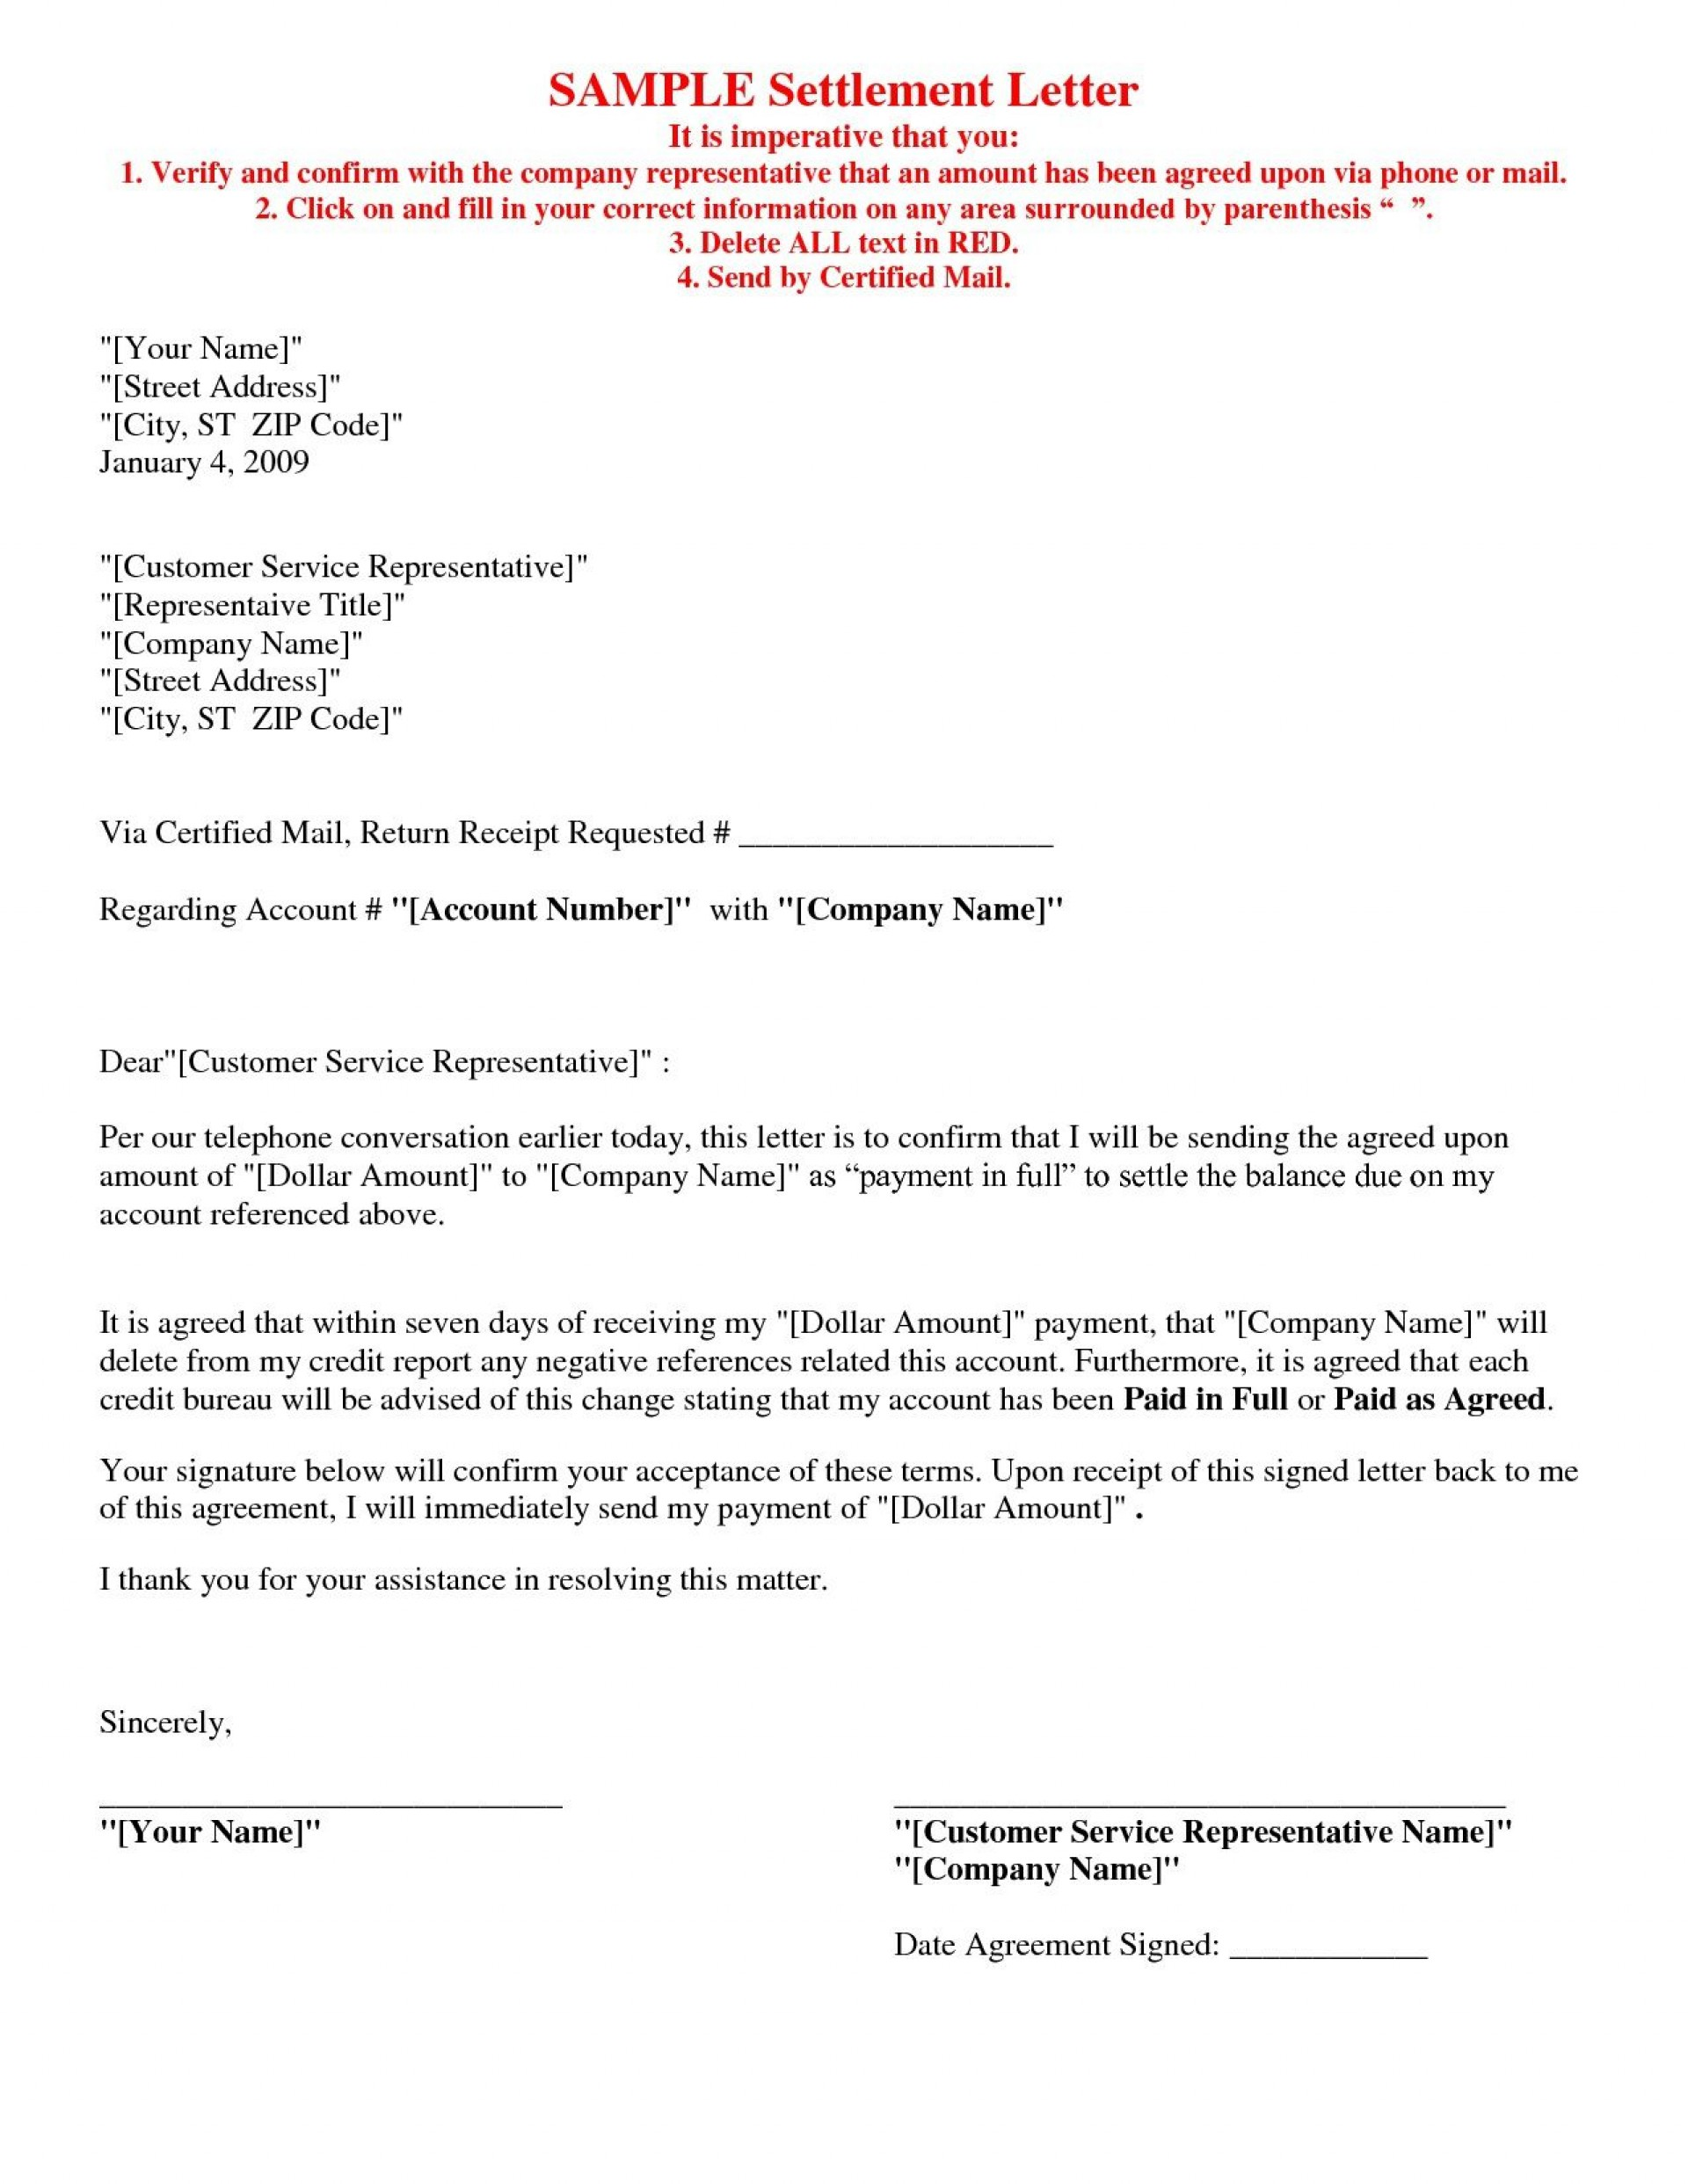 008 Outstanding Sample Letter Of Agreement Template Design  For A In Project Prepare1920